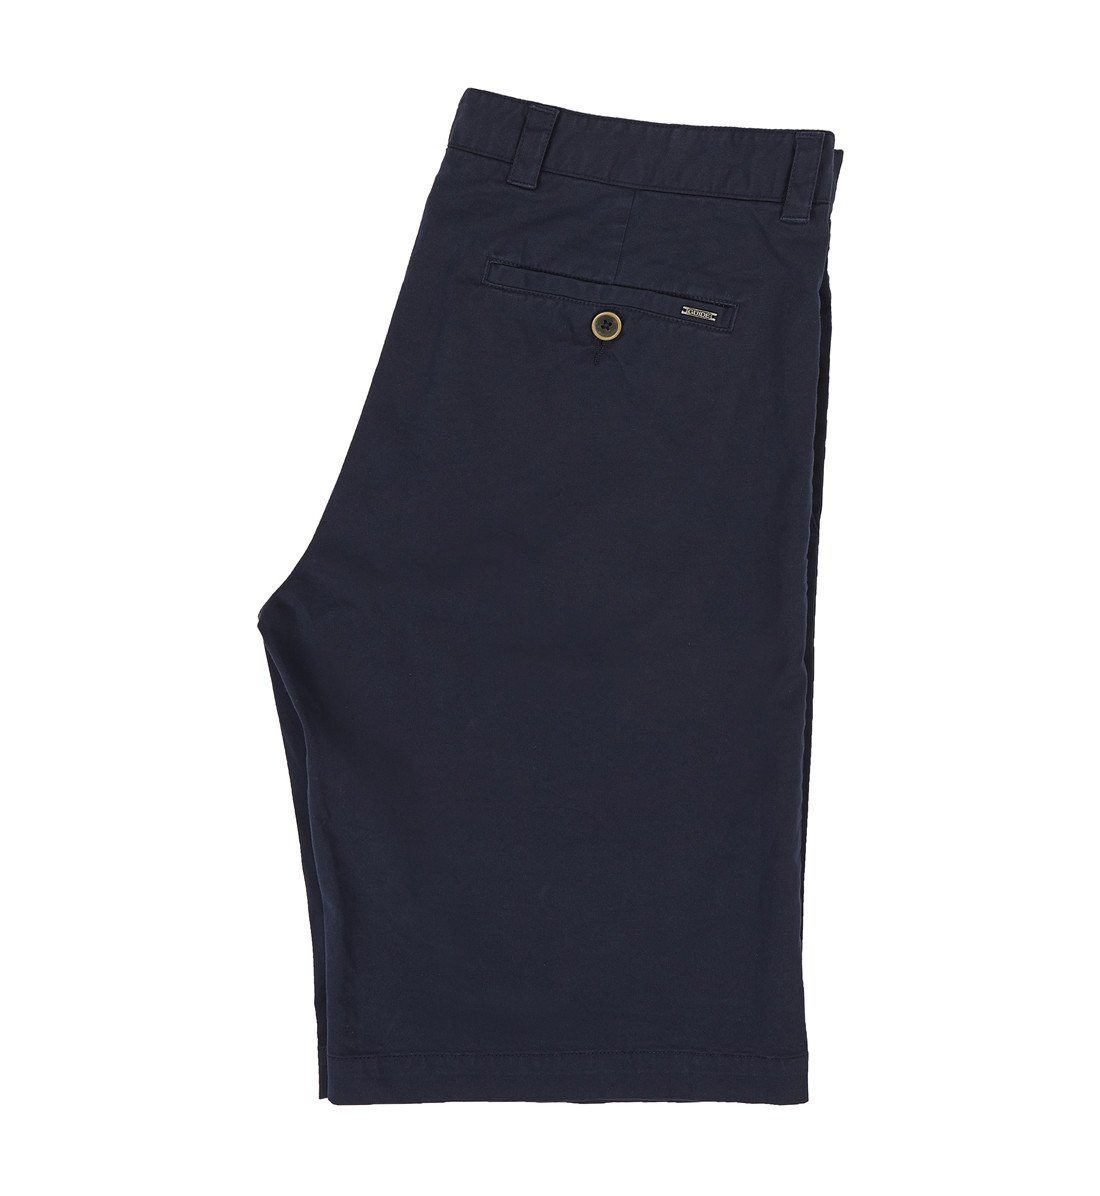 GUIDE NAVY Classic men's chino shorts - Leonard Silver